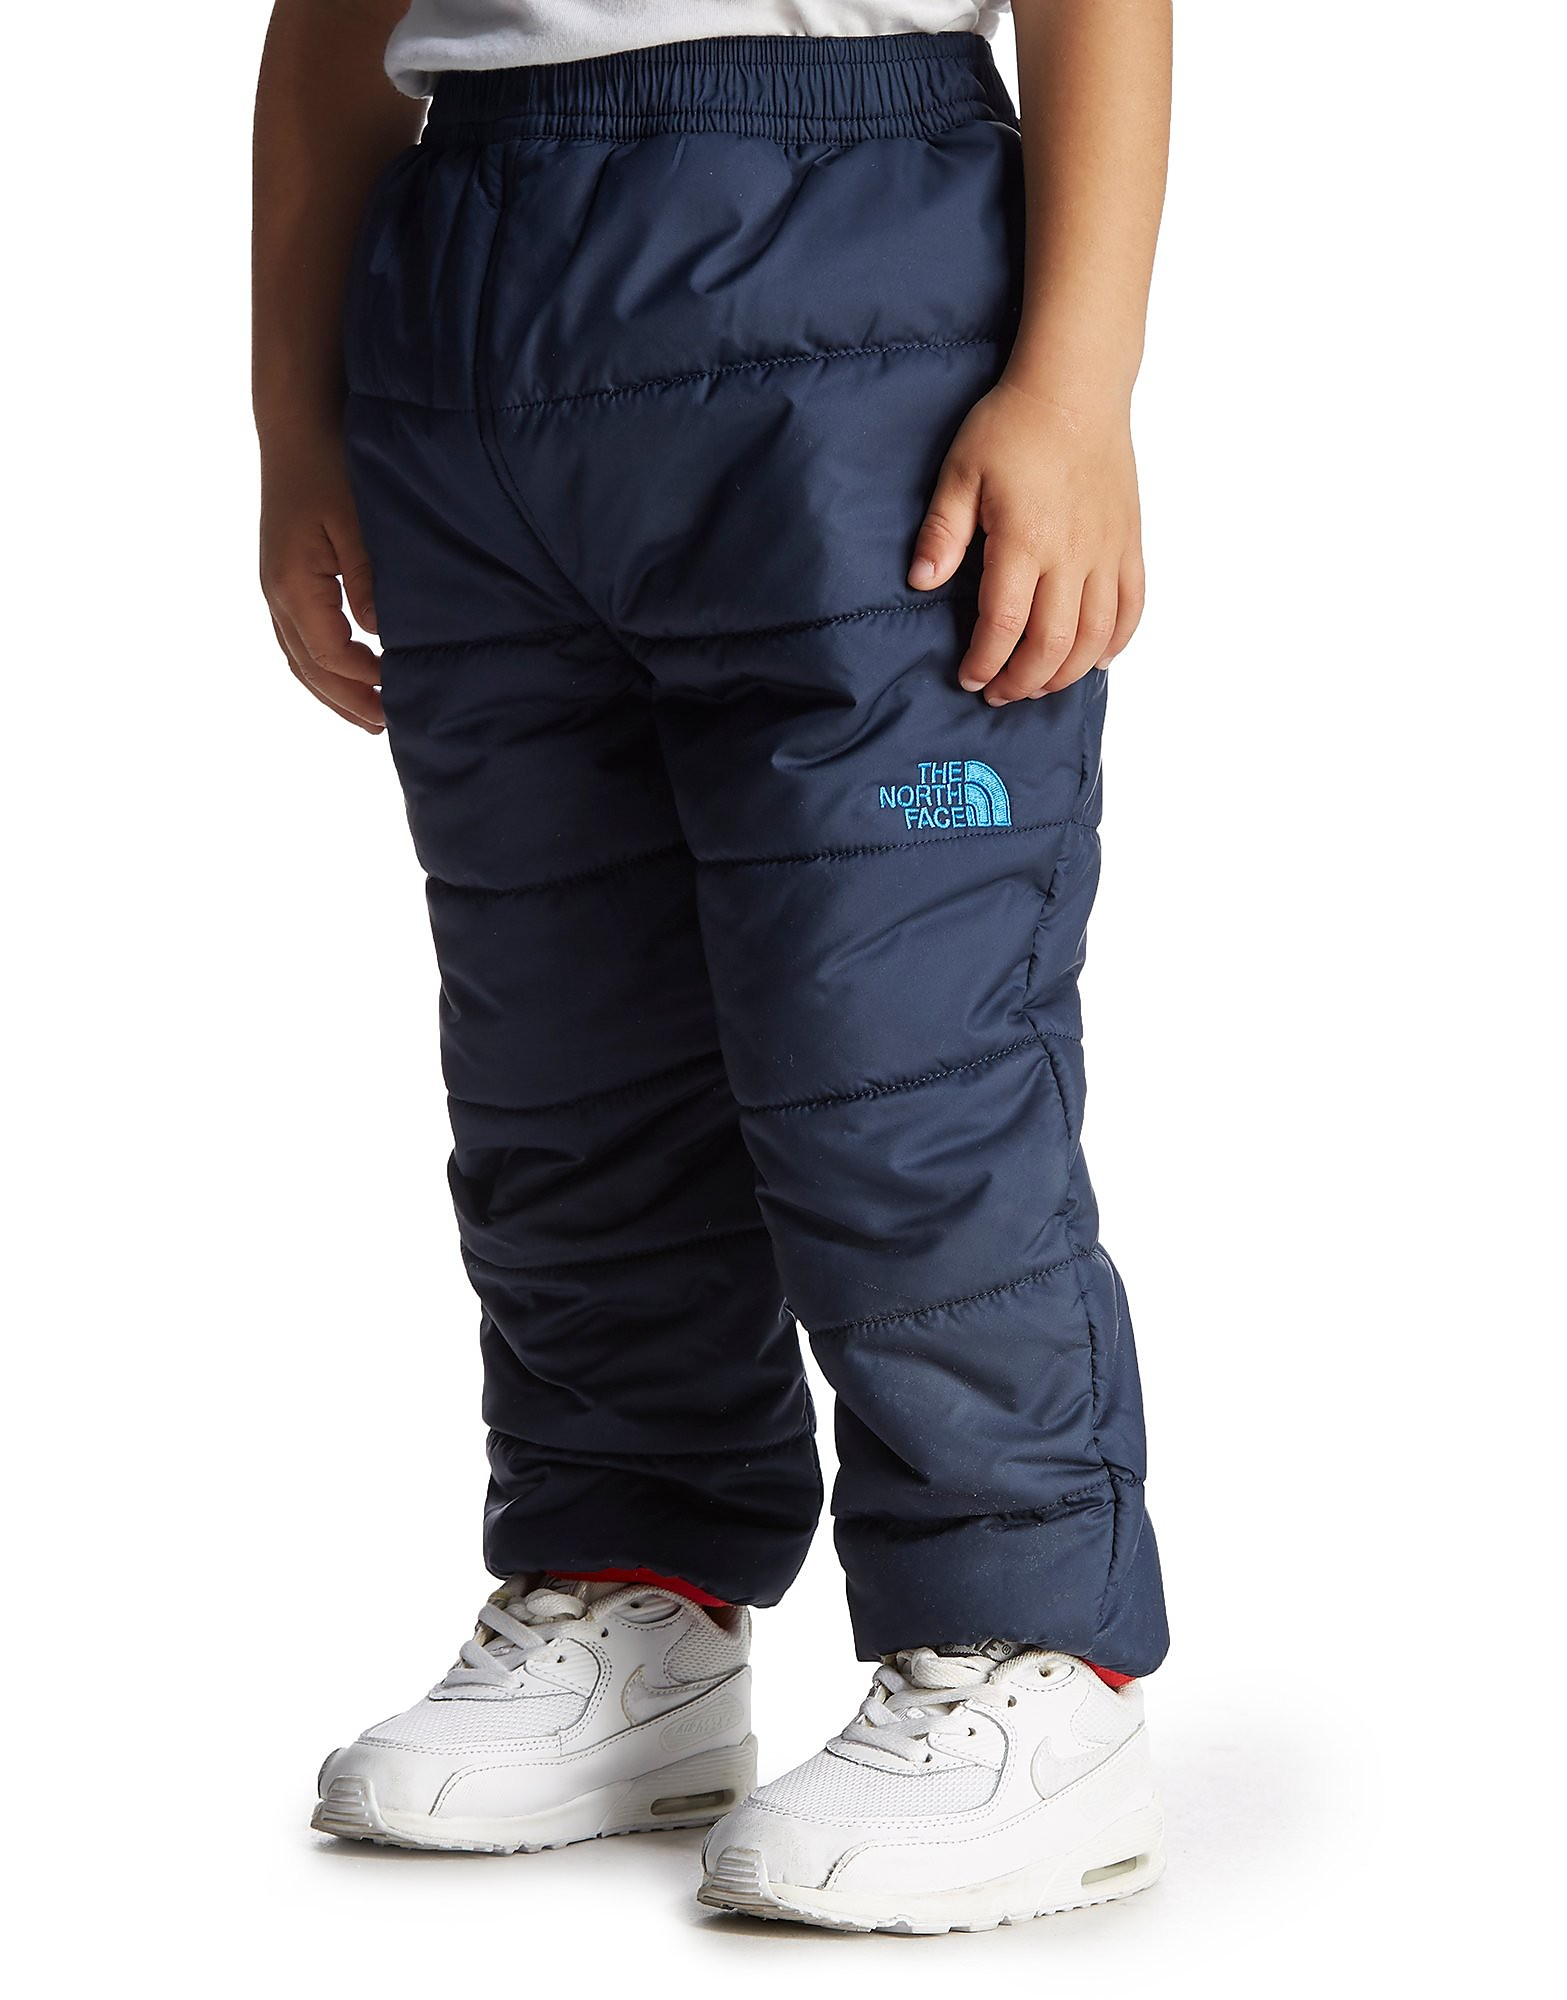 The North Face Reversible Perrito Kinderhose zum Wenden